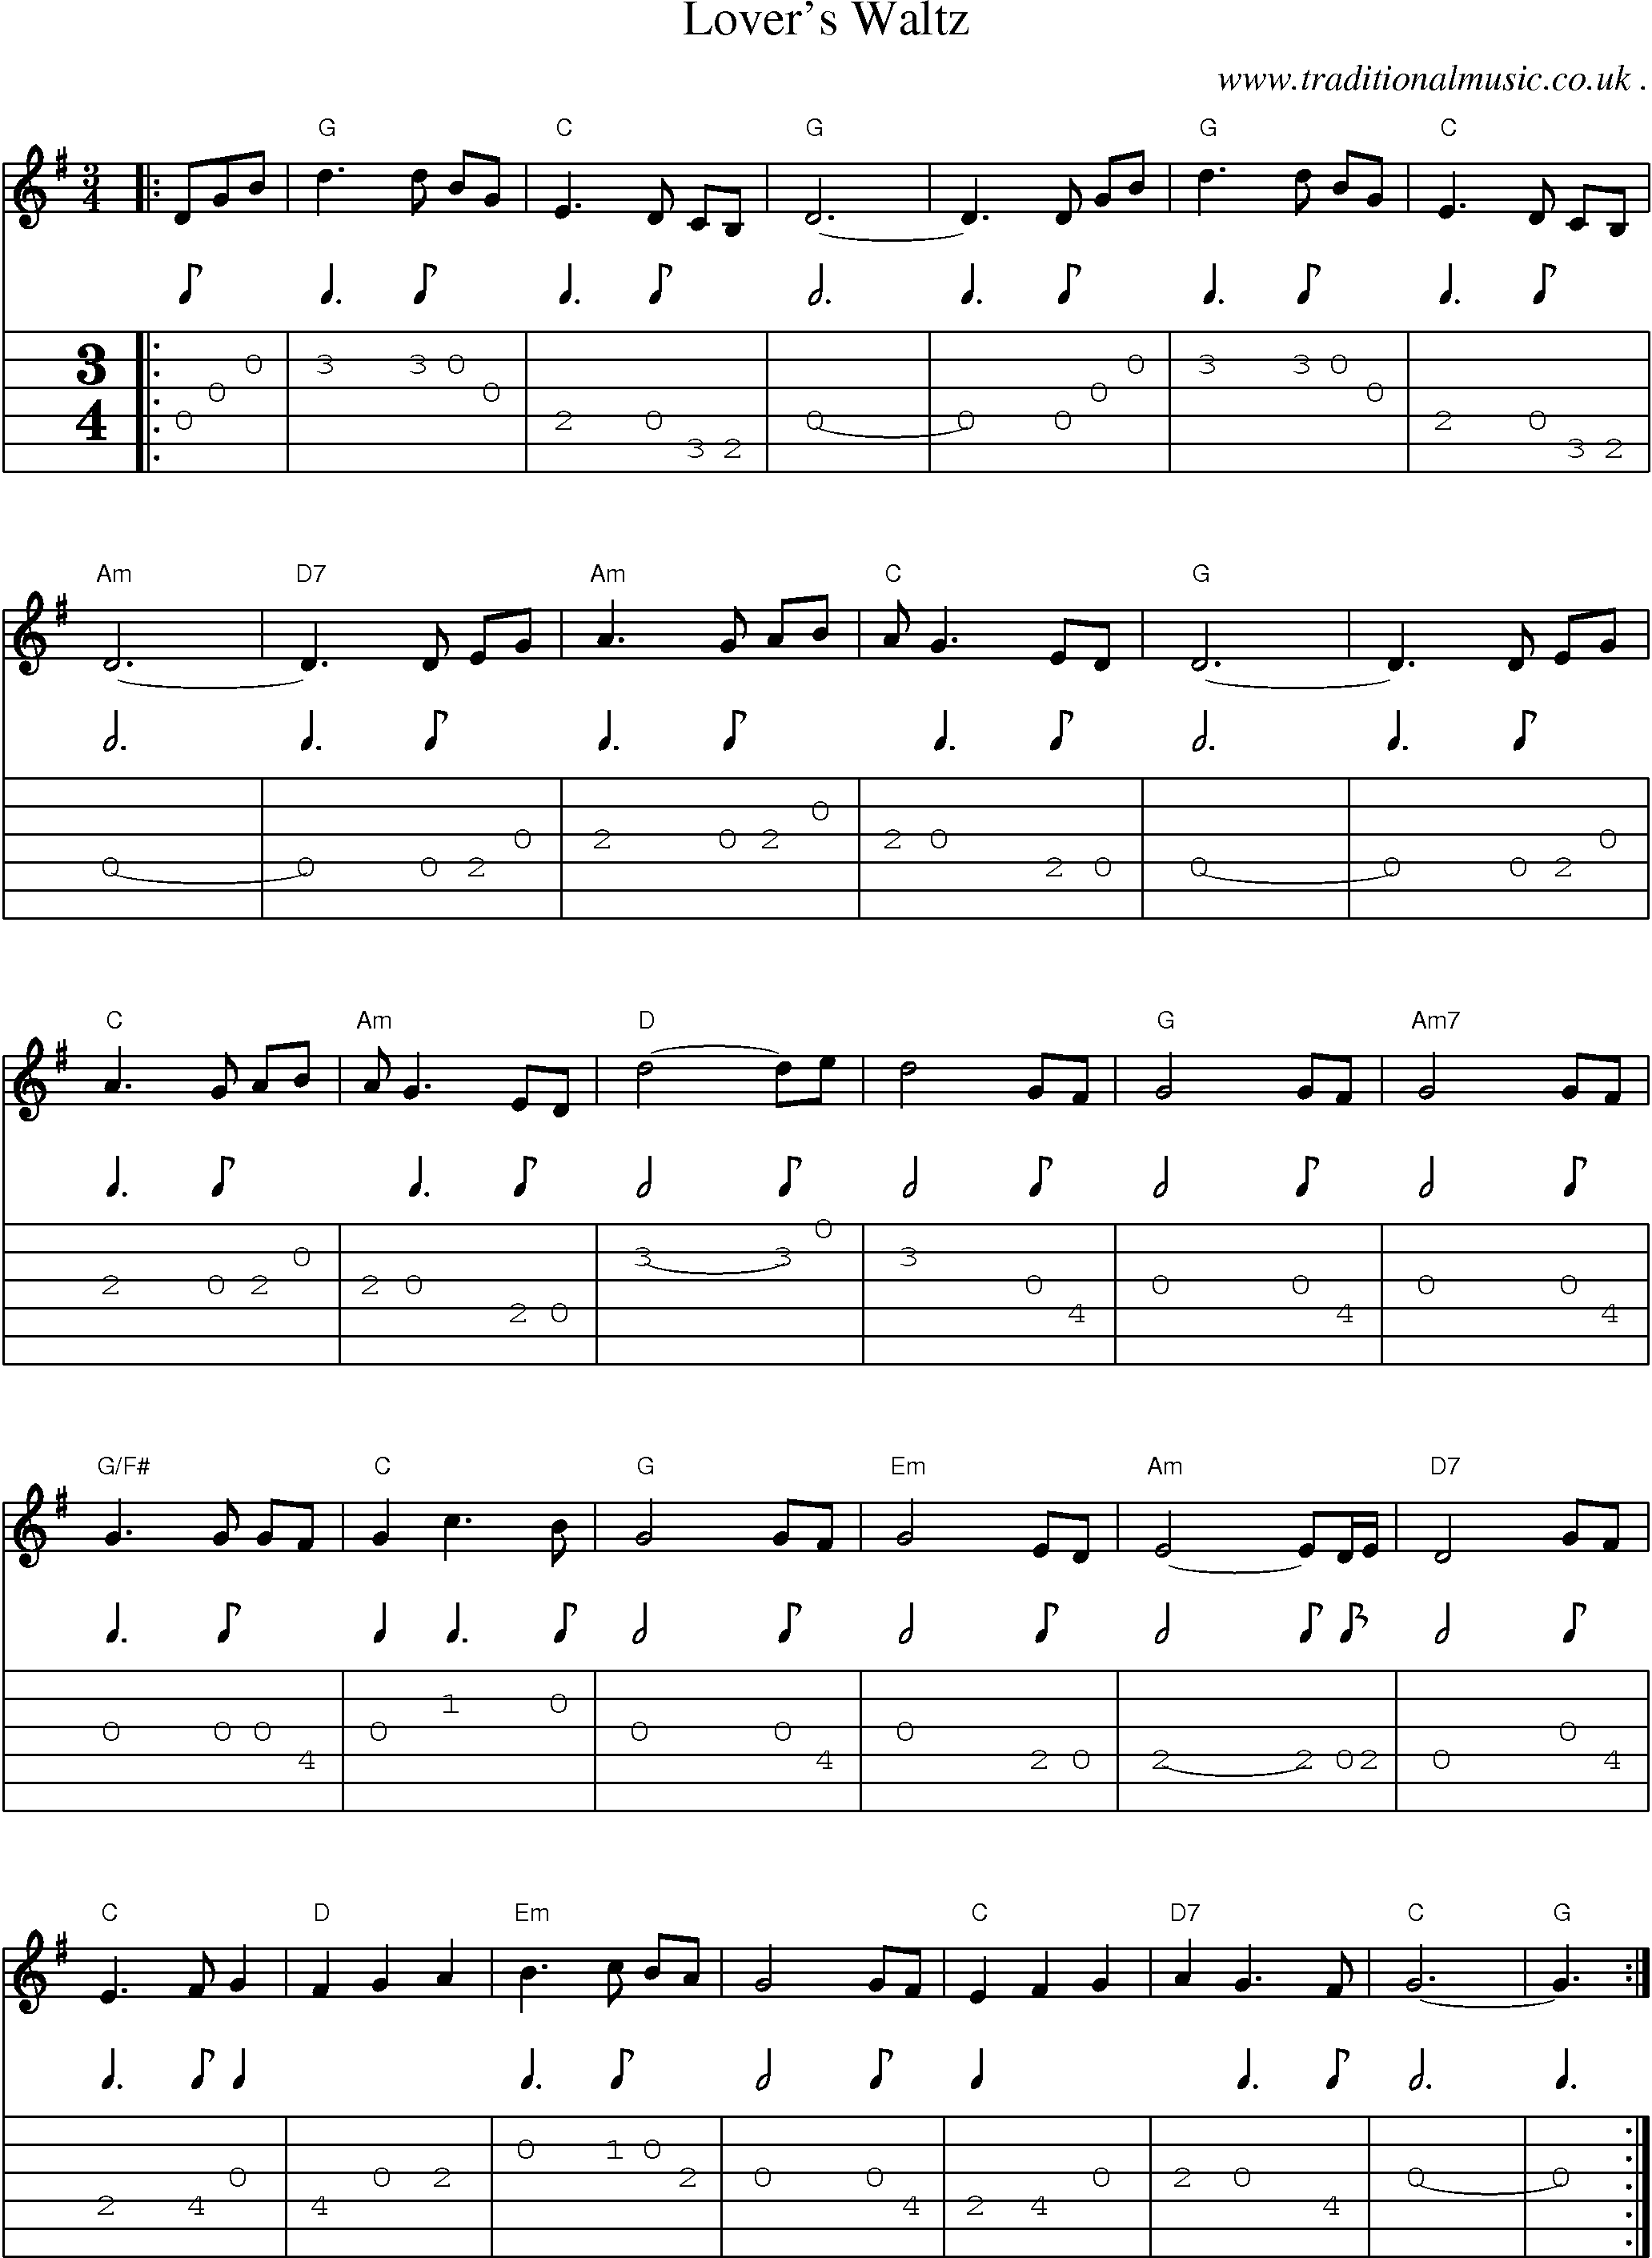 Common session tunes, Scores and Tabs for Guitar - Lovers Waltz